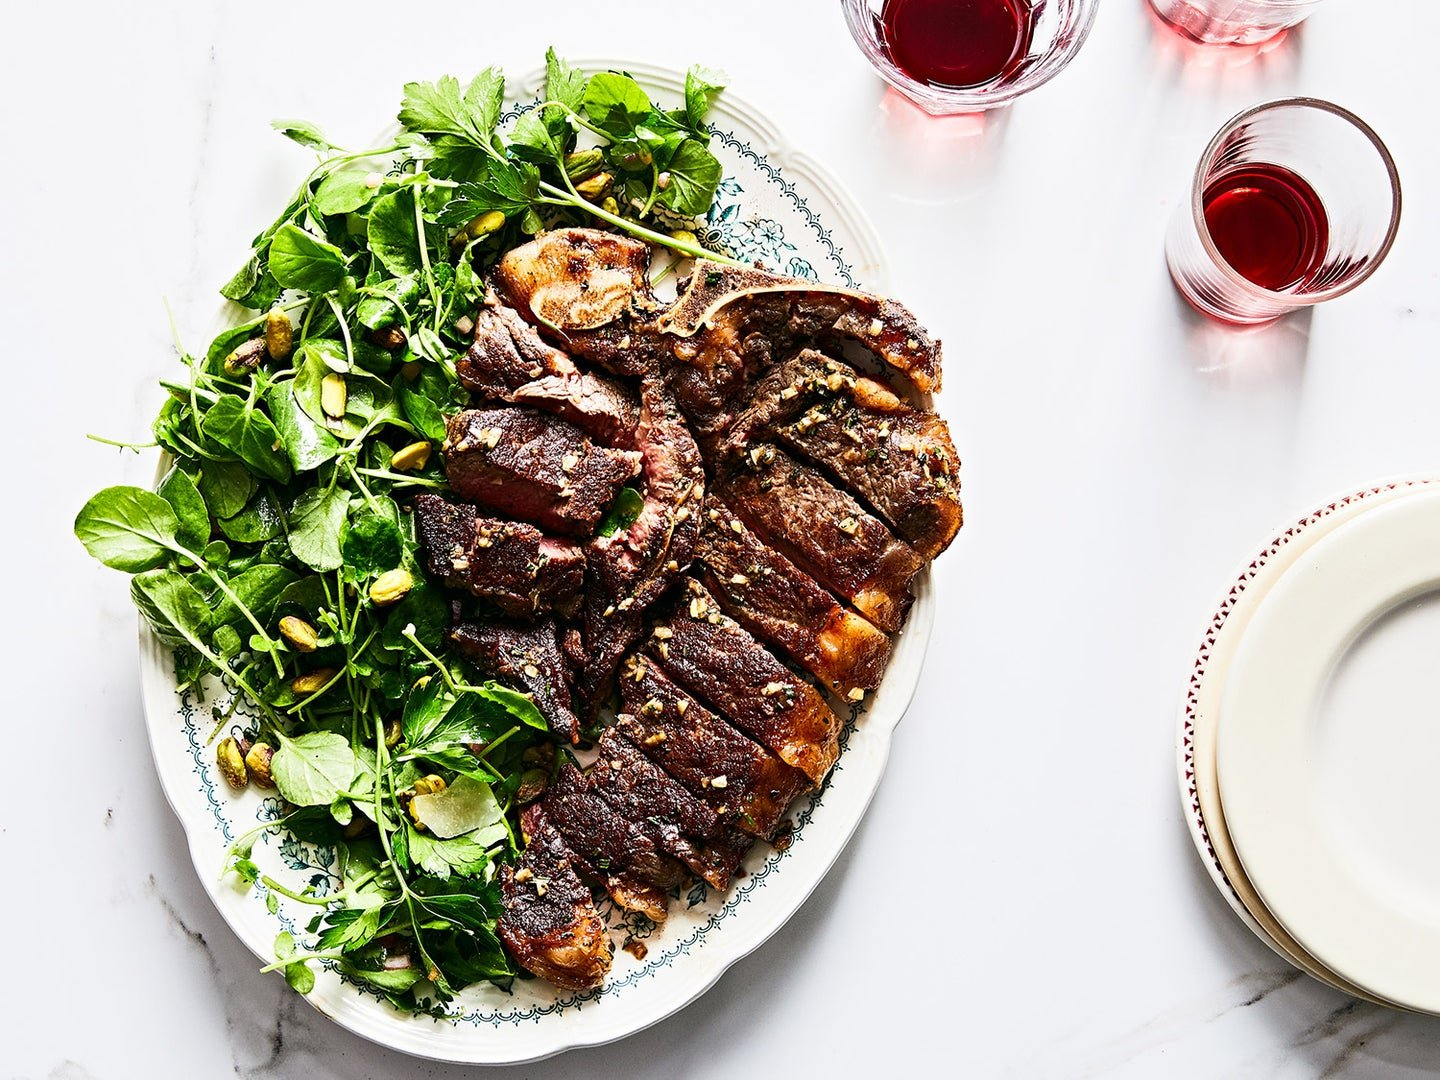 José Andrés On His Trick For Cooking The Most Flavorful Steak—And 21 More Recipe Ideas